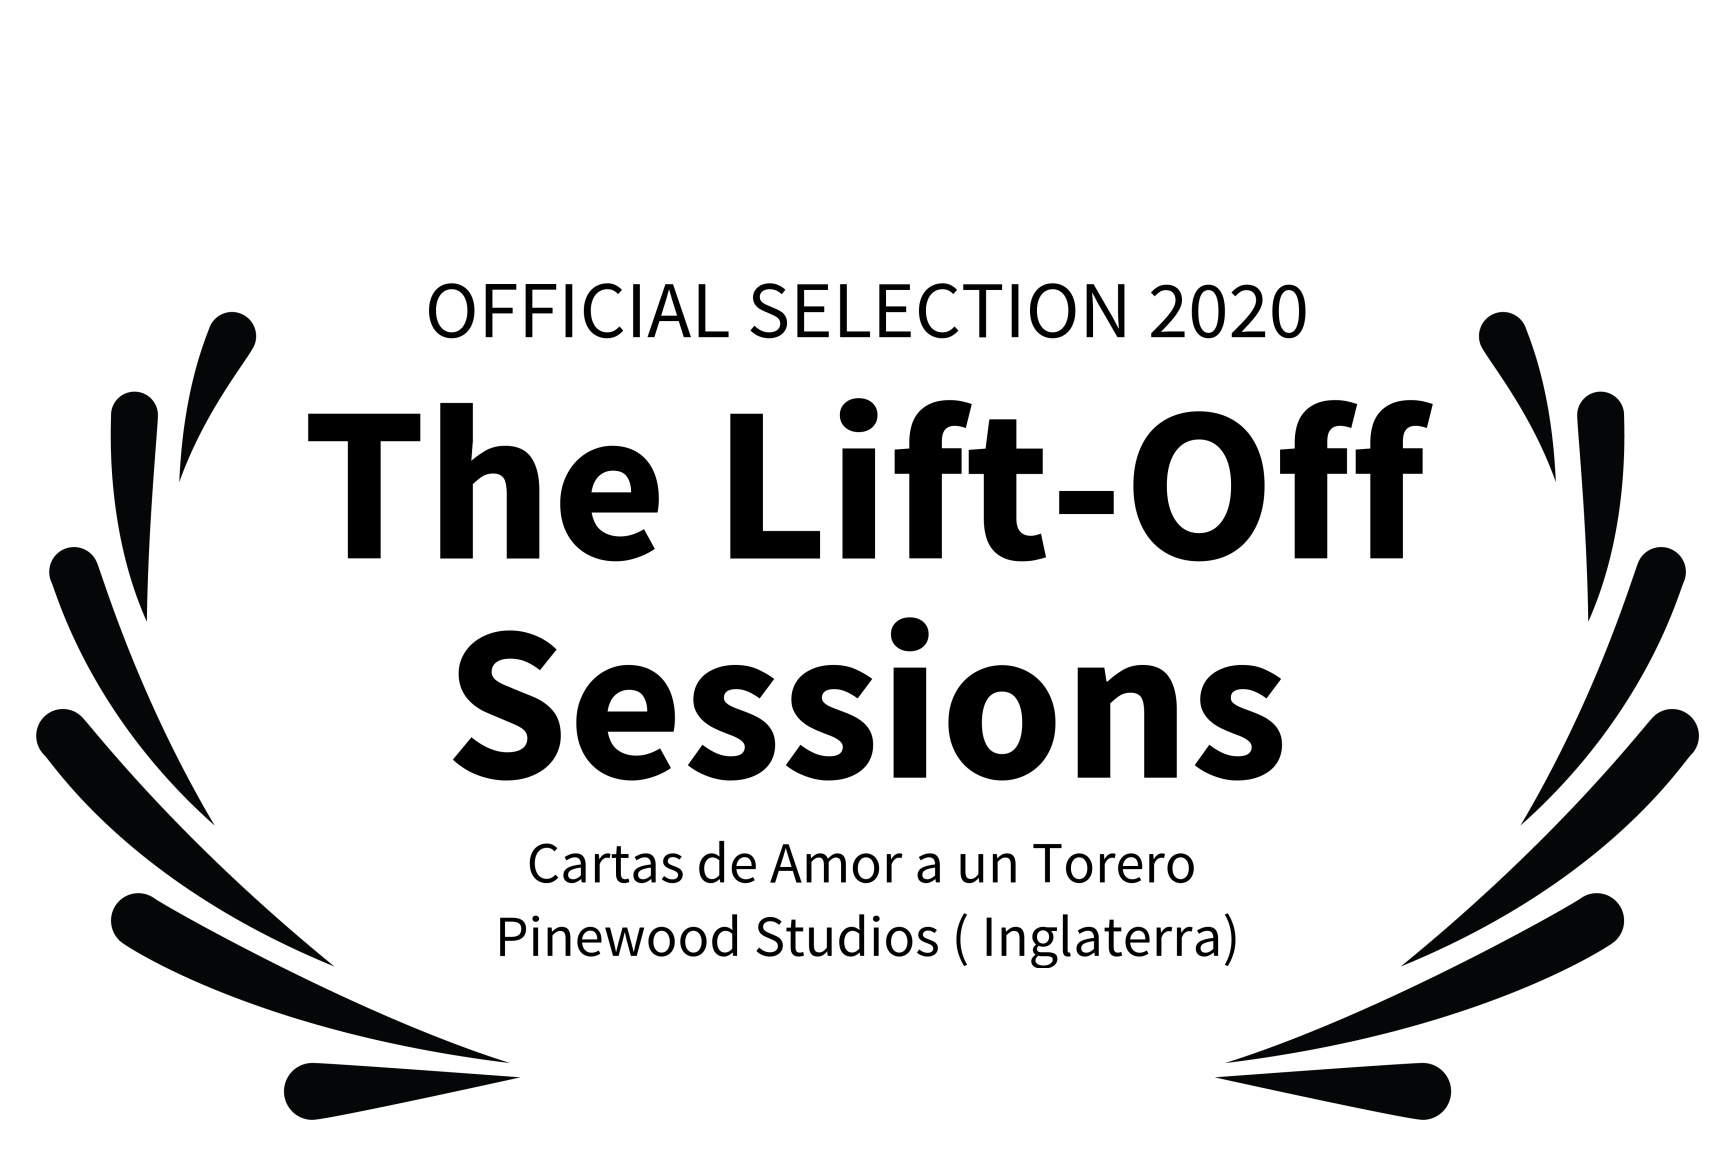 OFFICIAL SELECTION 2020 - The Lift-Off S